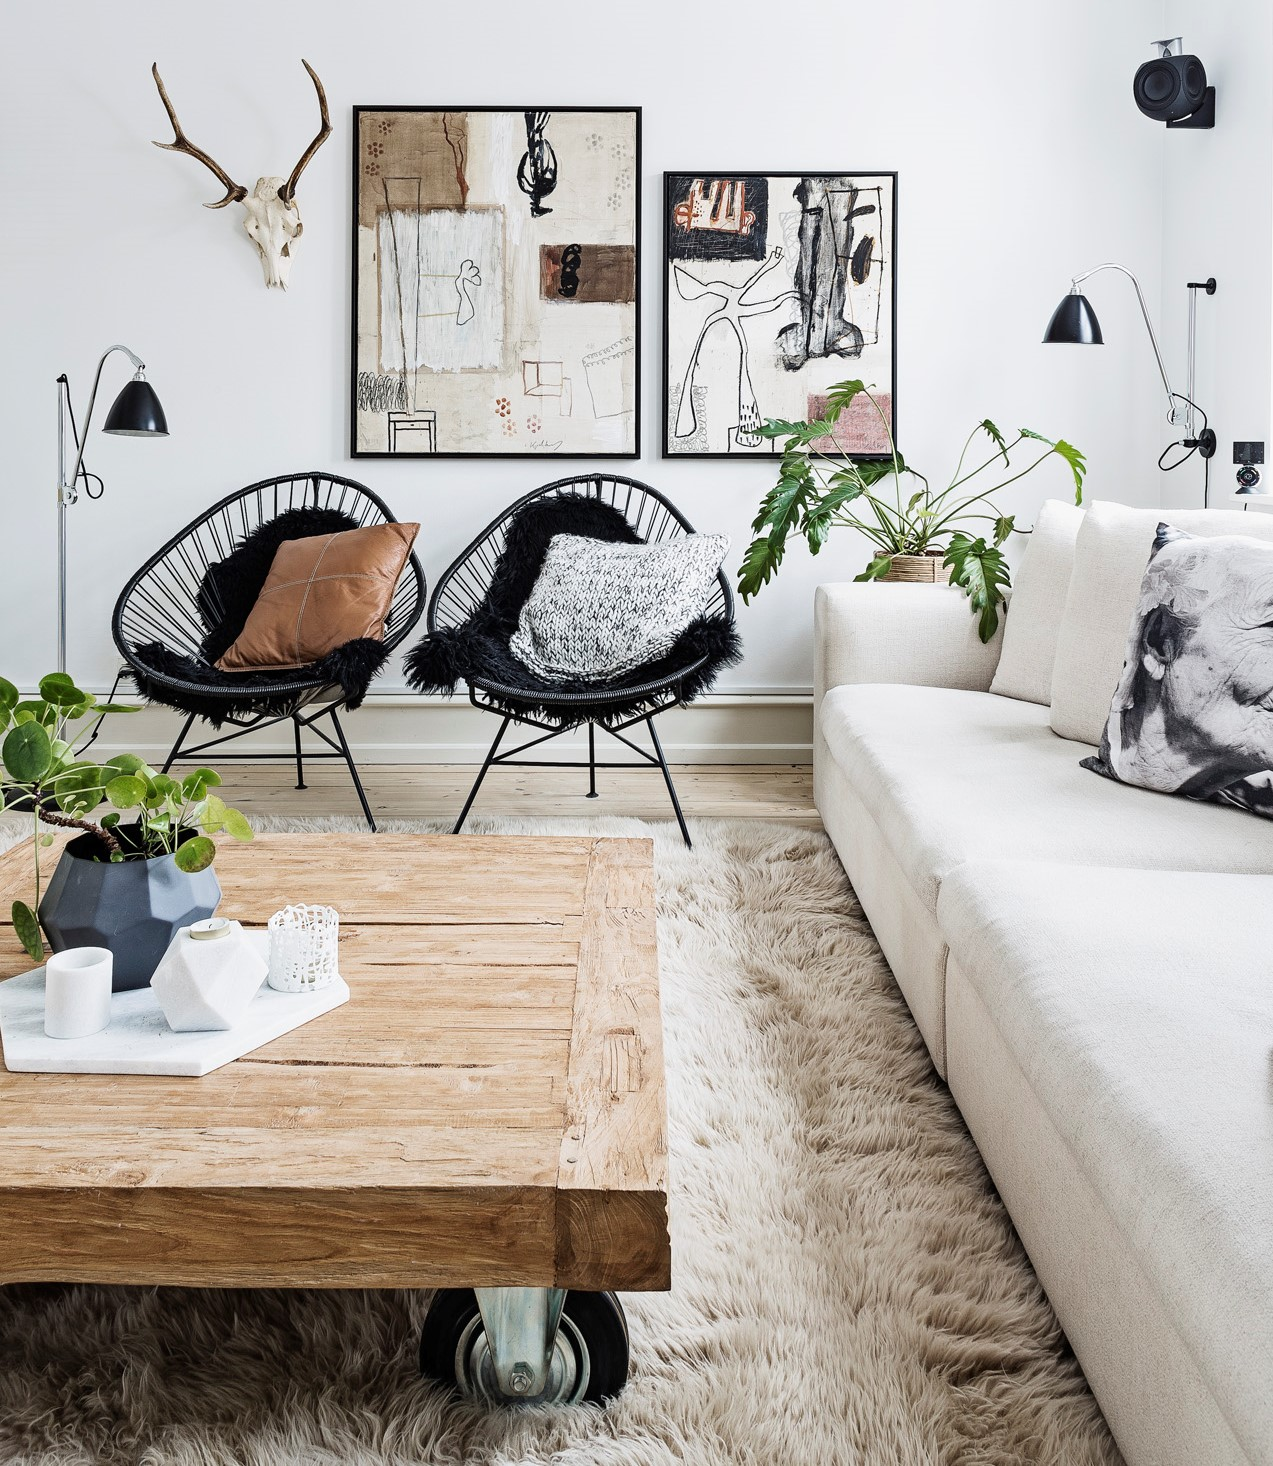 5 Iconic Home Décor Styles For Your New Home - Home Decor Masters